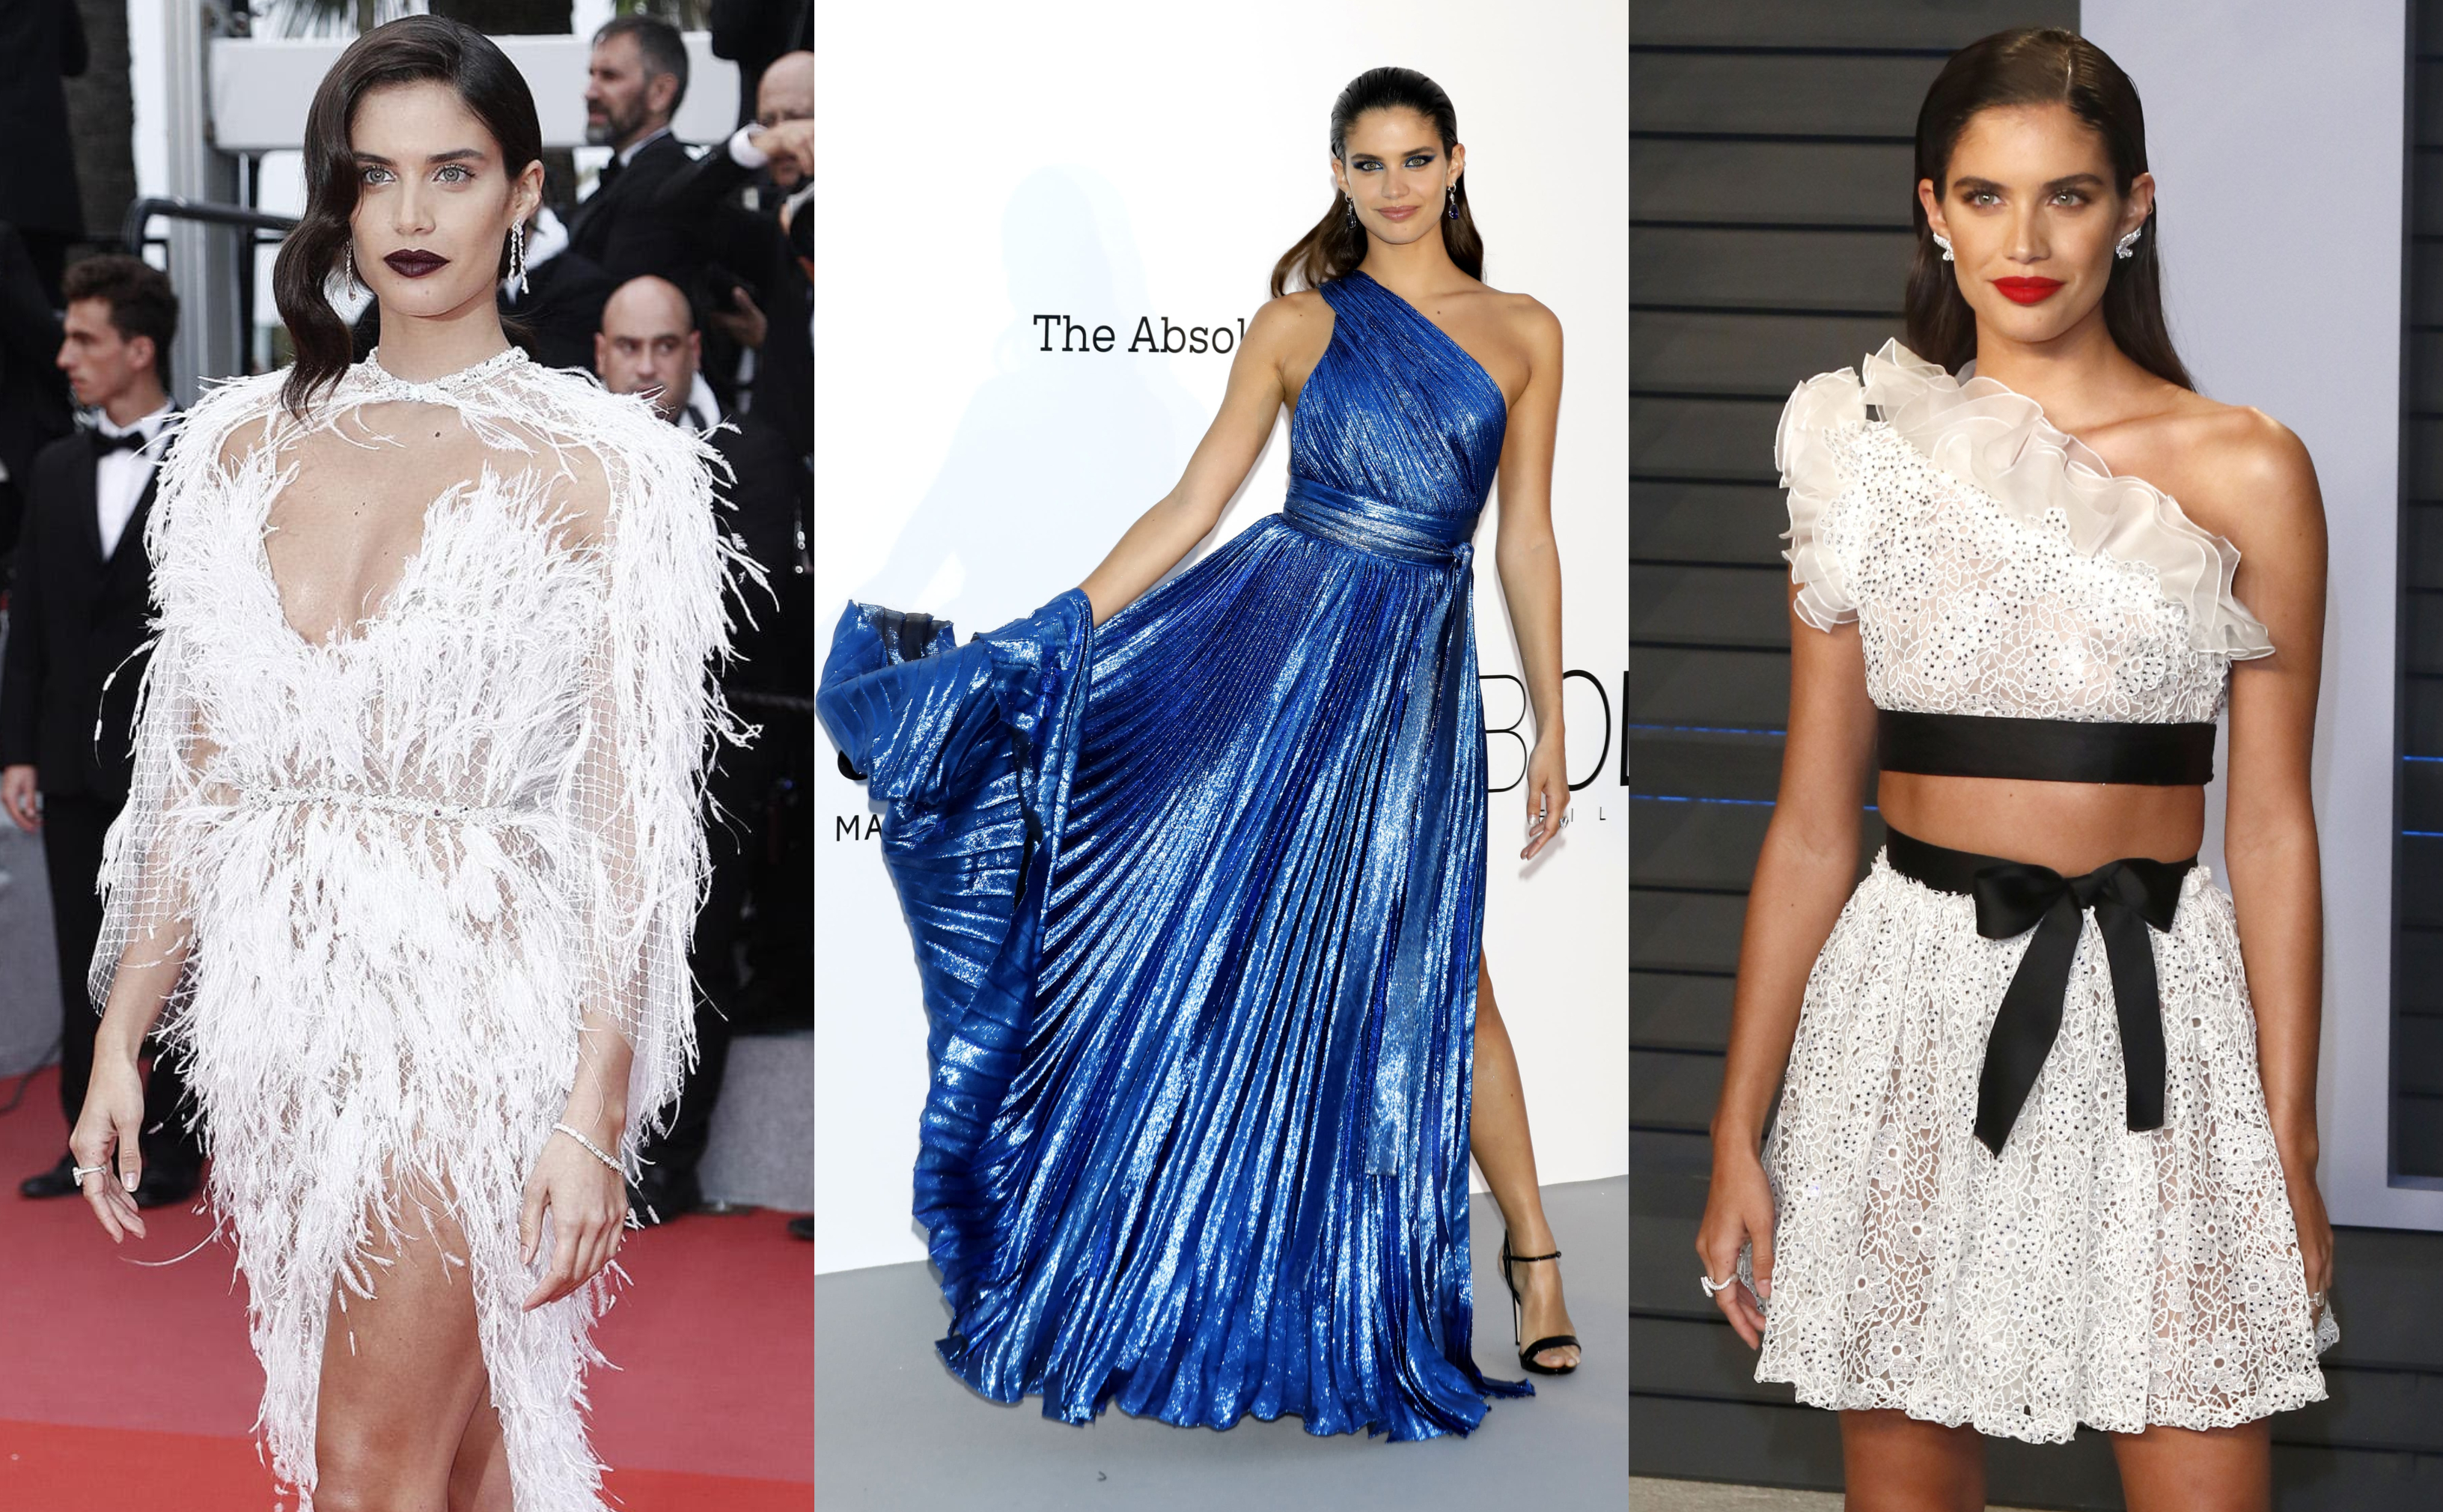 Innovative fabrics, bold detailing, daring slits… this woman truly can do no wrong on the red carpet! (Photo: WENN)